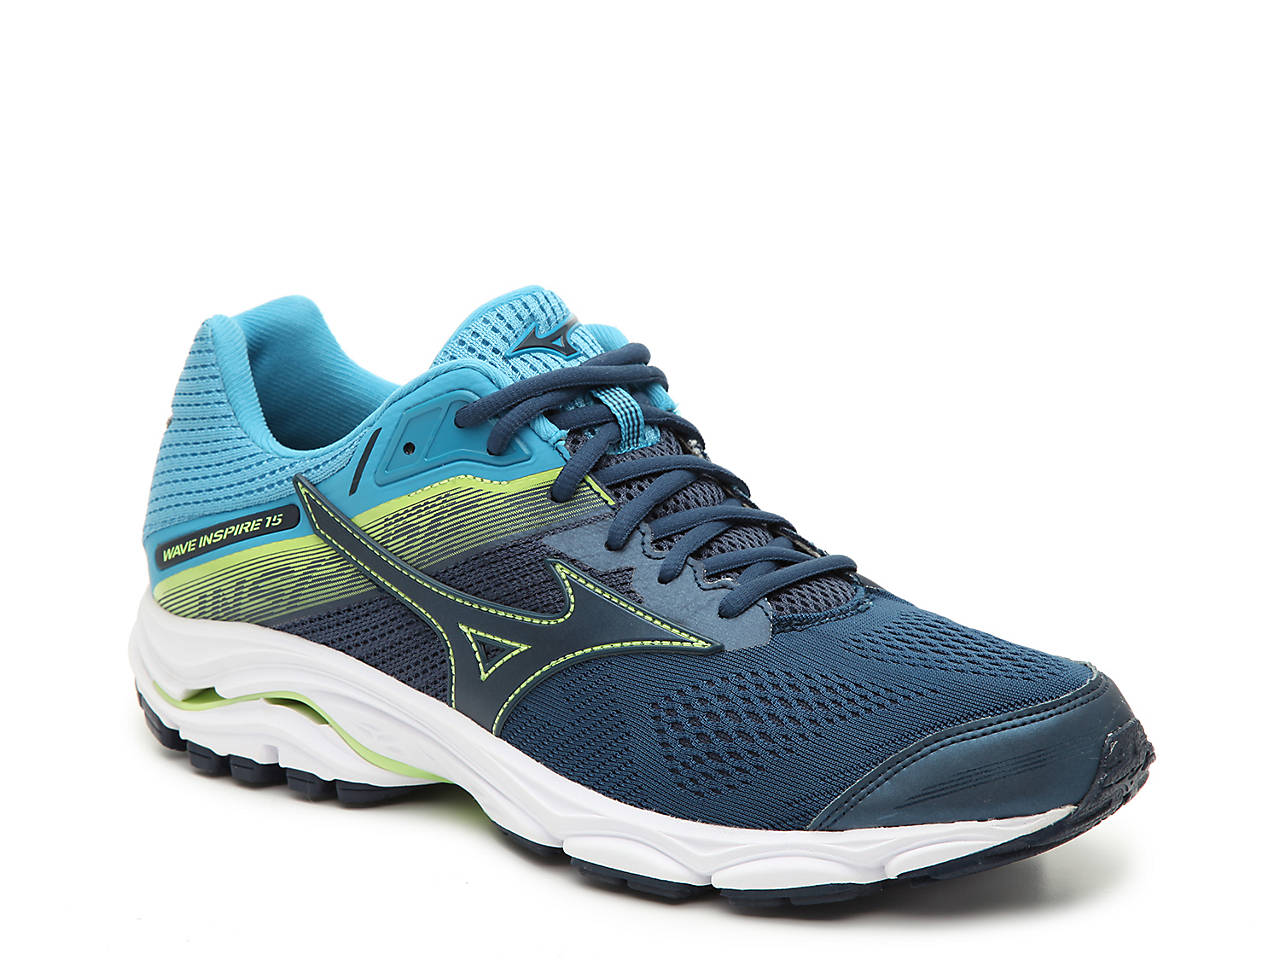 a5f22a84012f Mizuno Wave Inspire 15 Running Shoe - Men's Men's Shoes | DSW